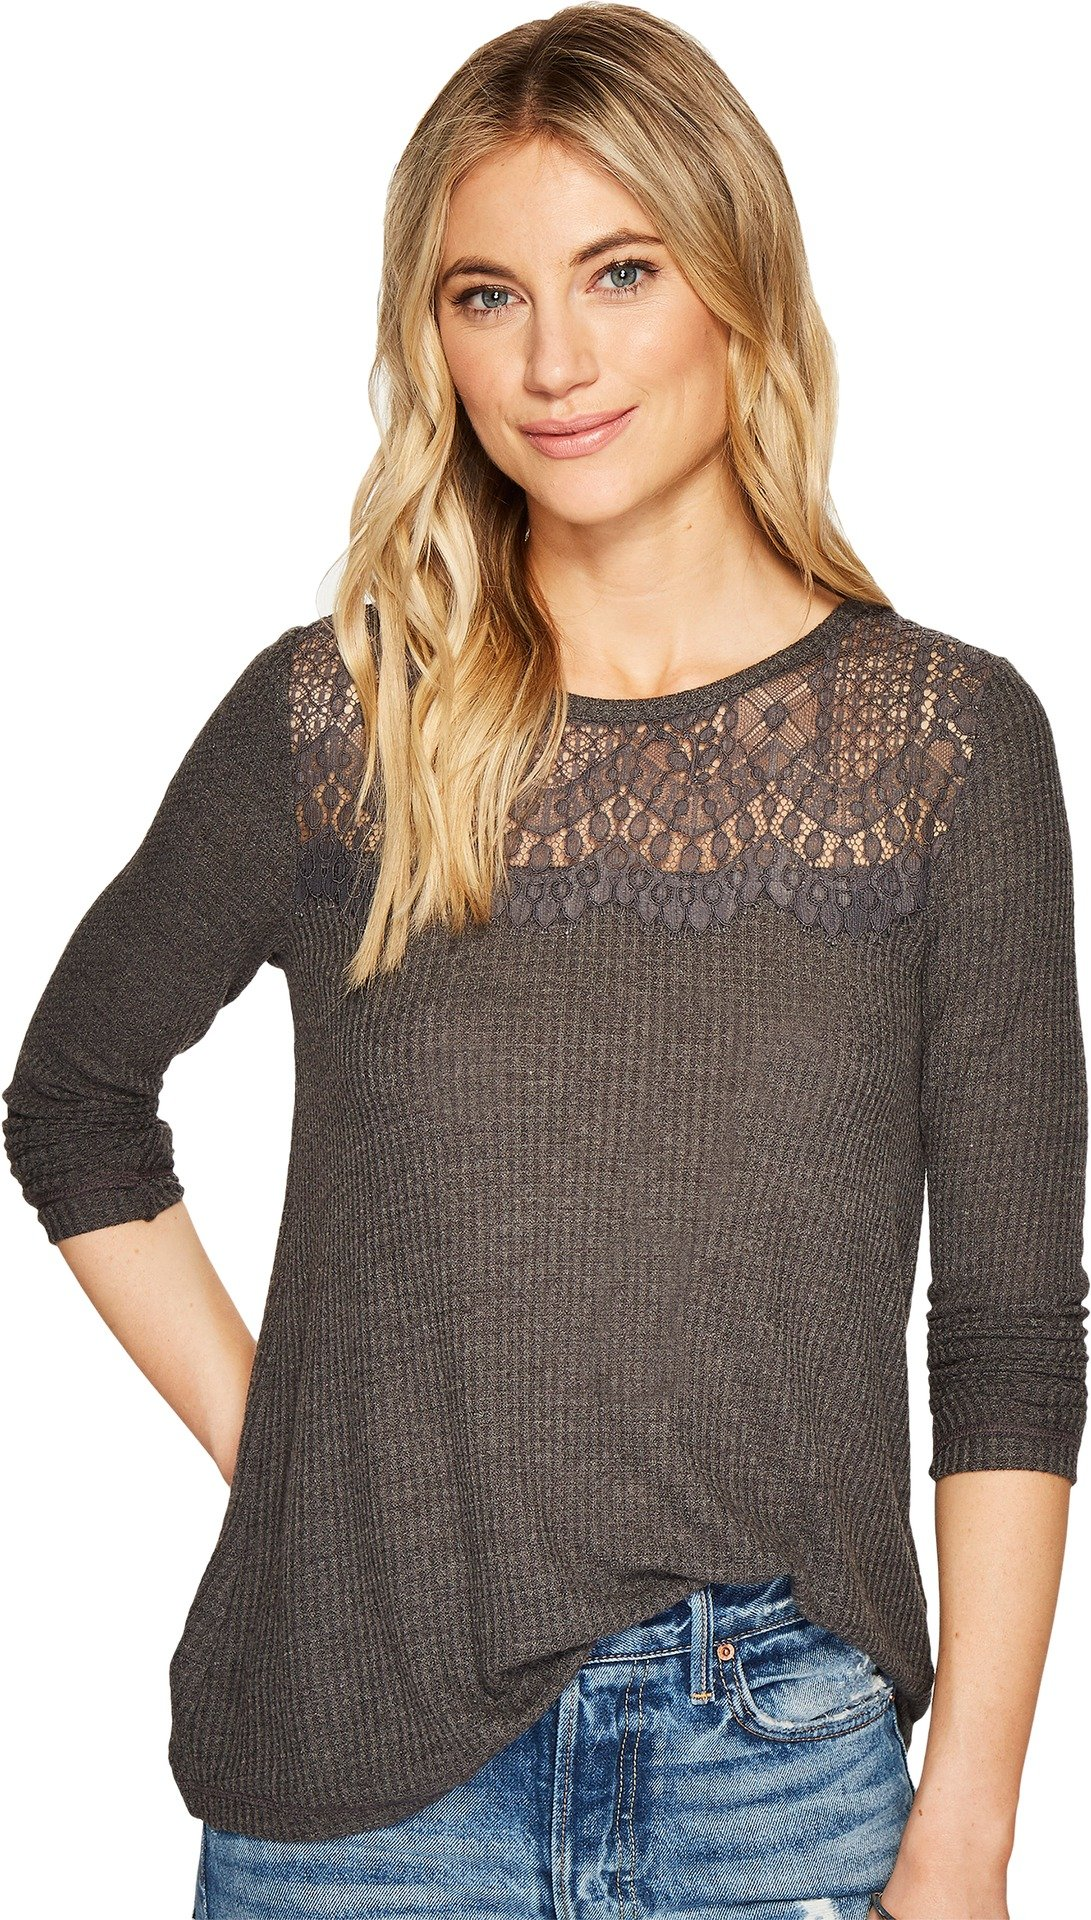 Lucky Brand Women's Lace Collar Thermal Top, Charcoal, X-Large